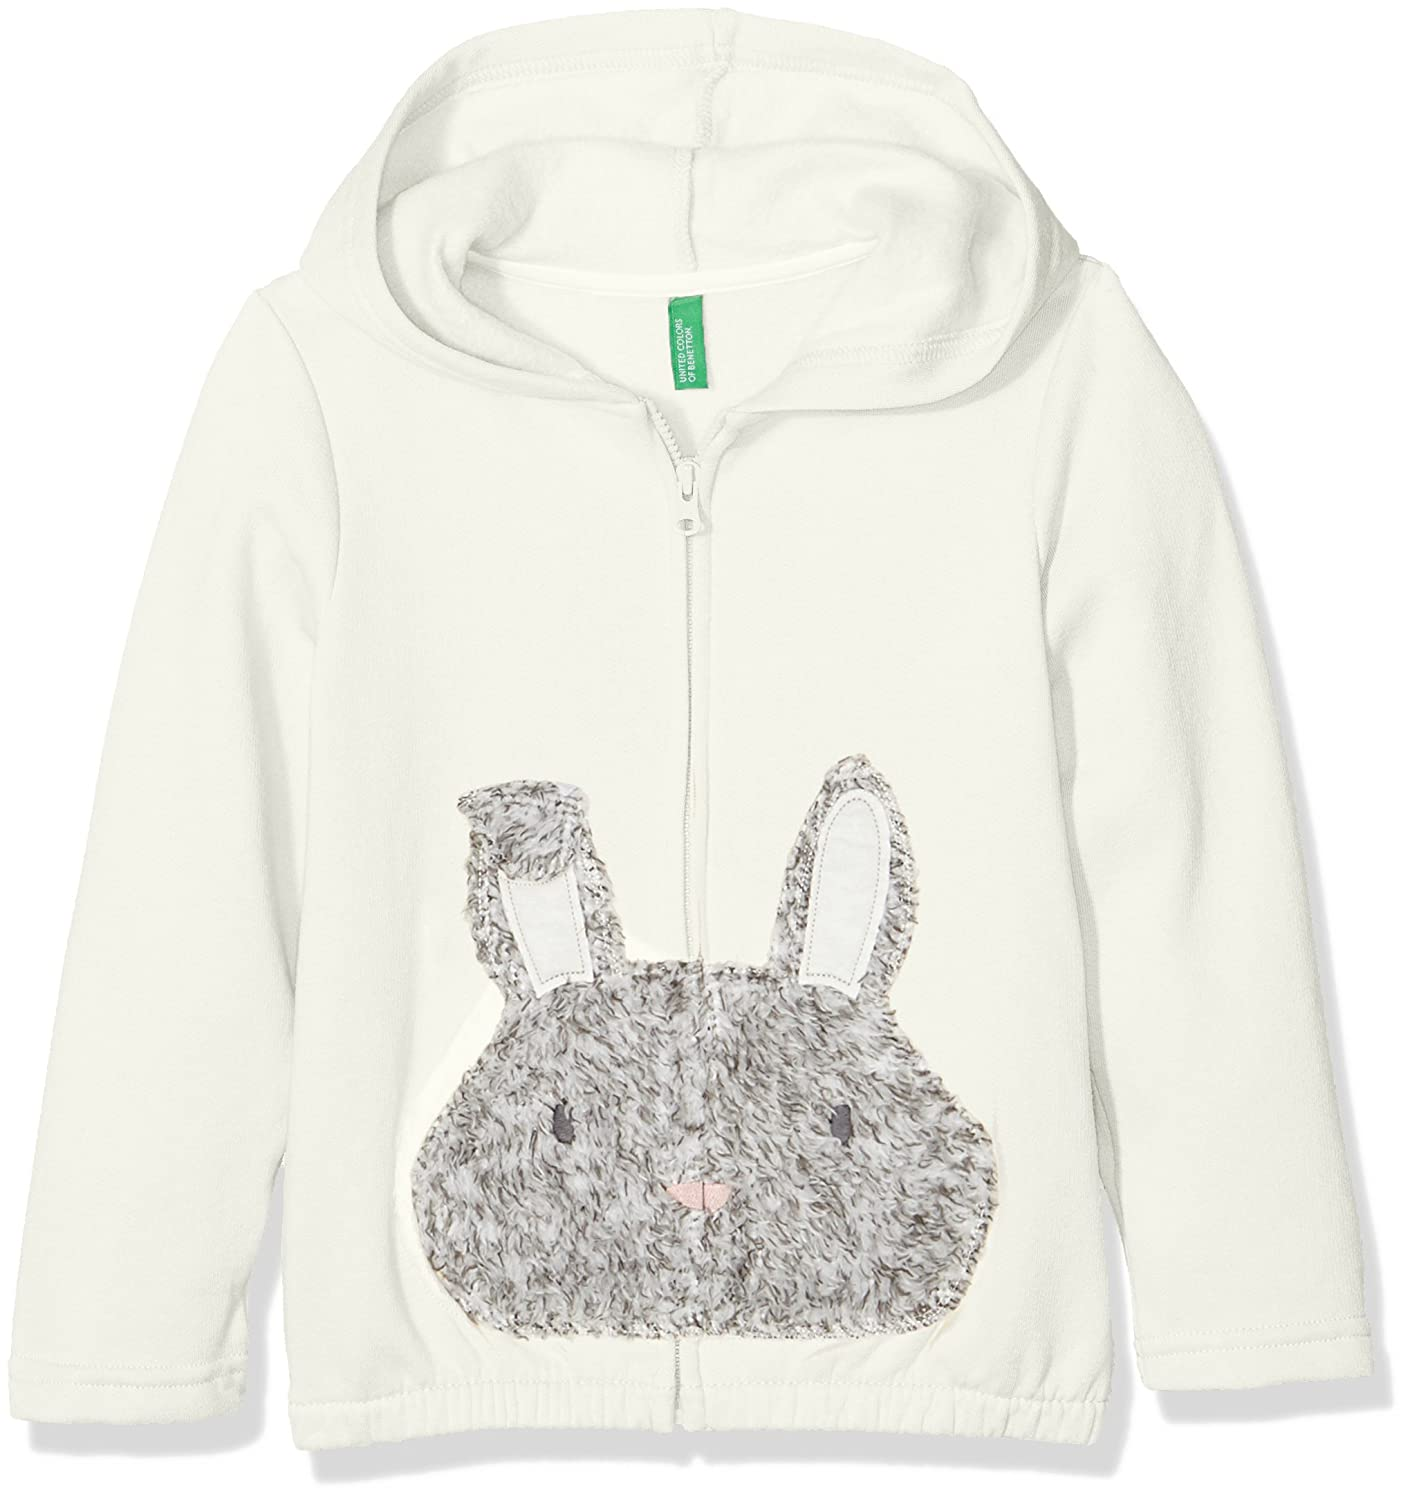 United Colors of Benetton Jacket W/Hood Longsleeve Cotton Blend, Giacca Bambina 3GW0C519P